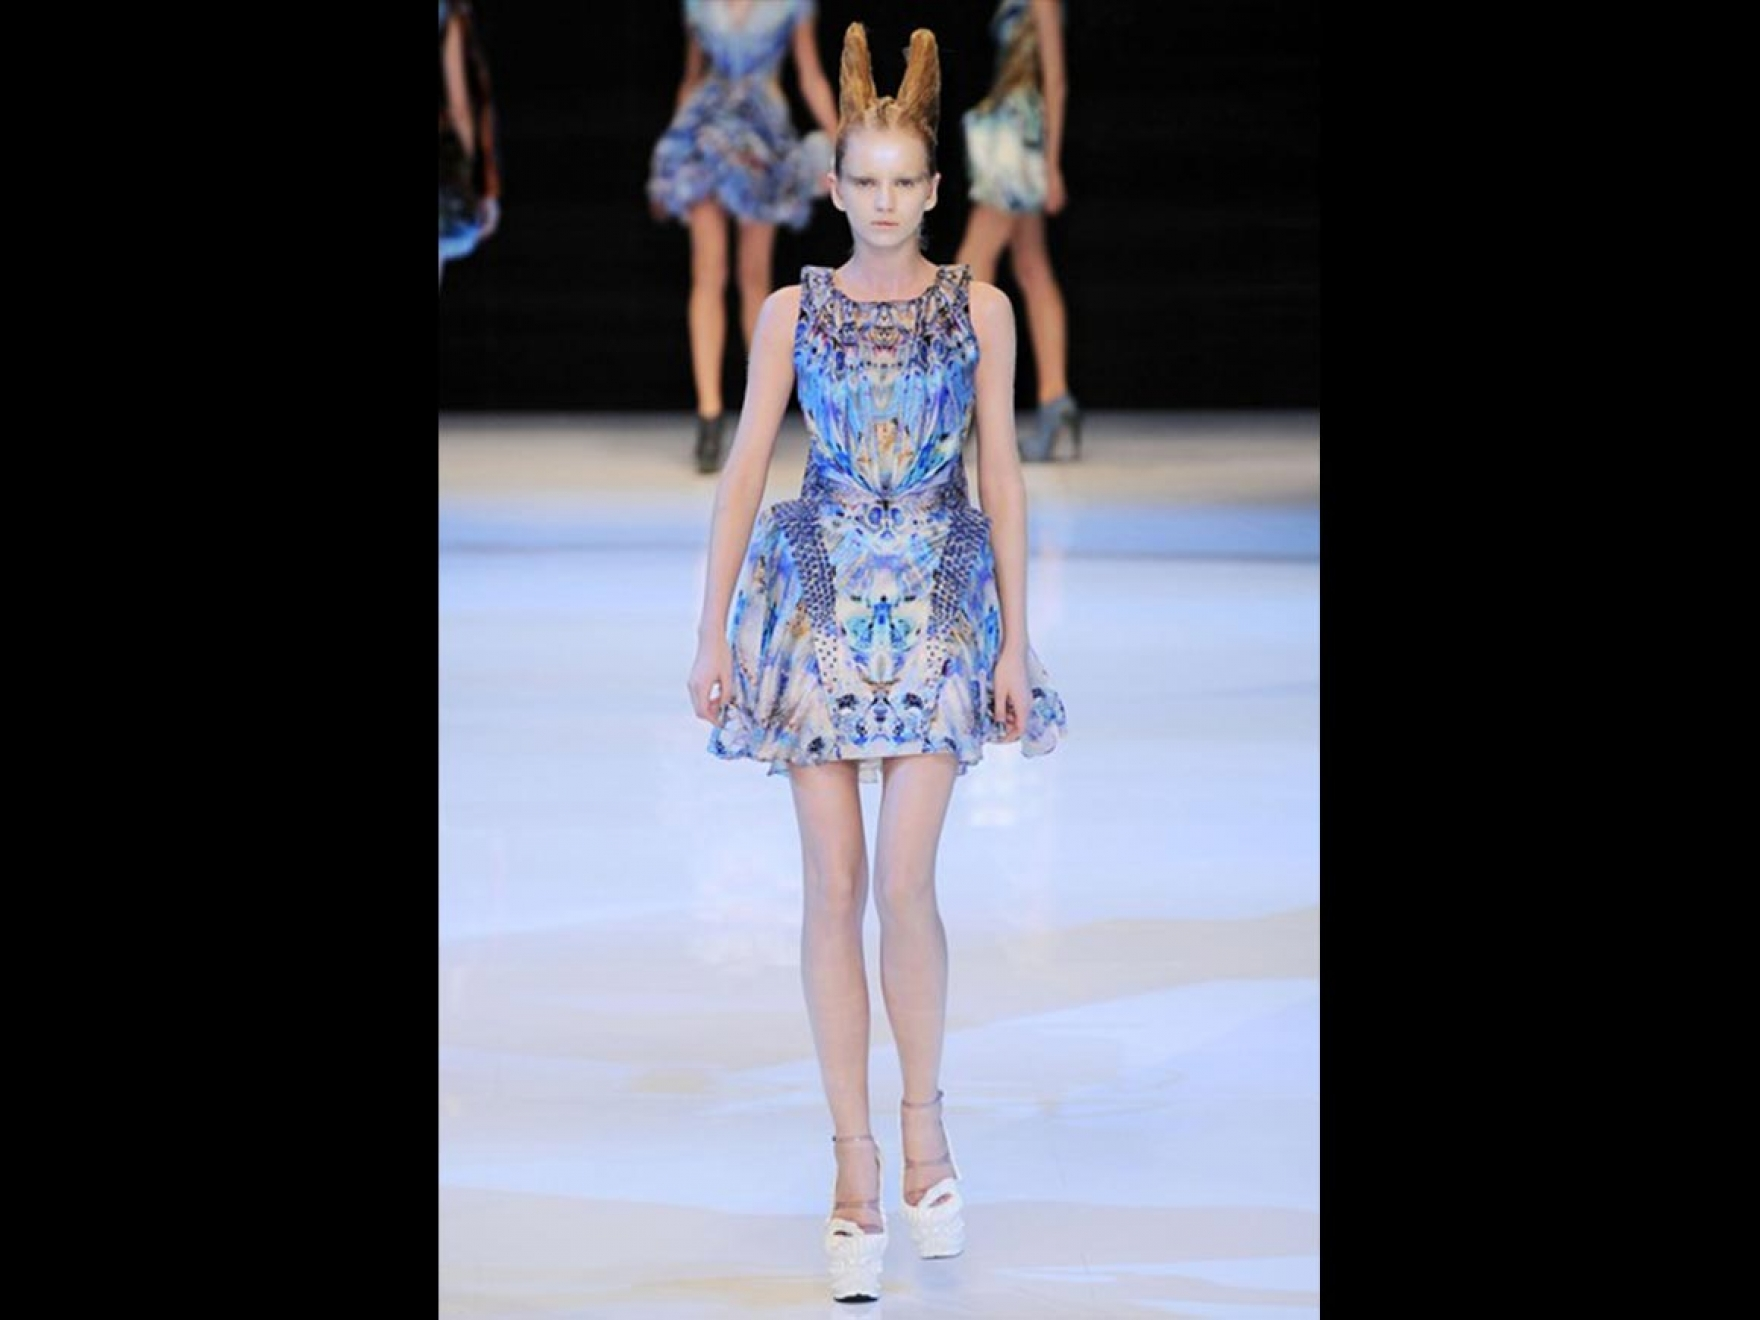 Fashion model wearing blue and white dress on runway